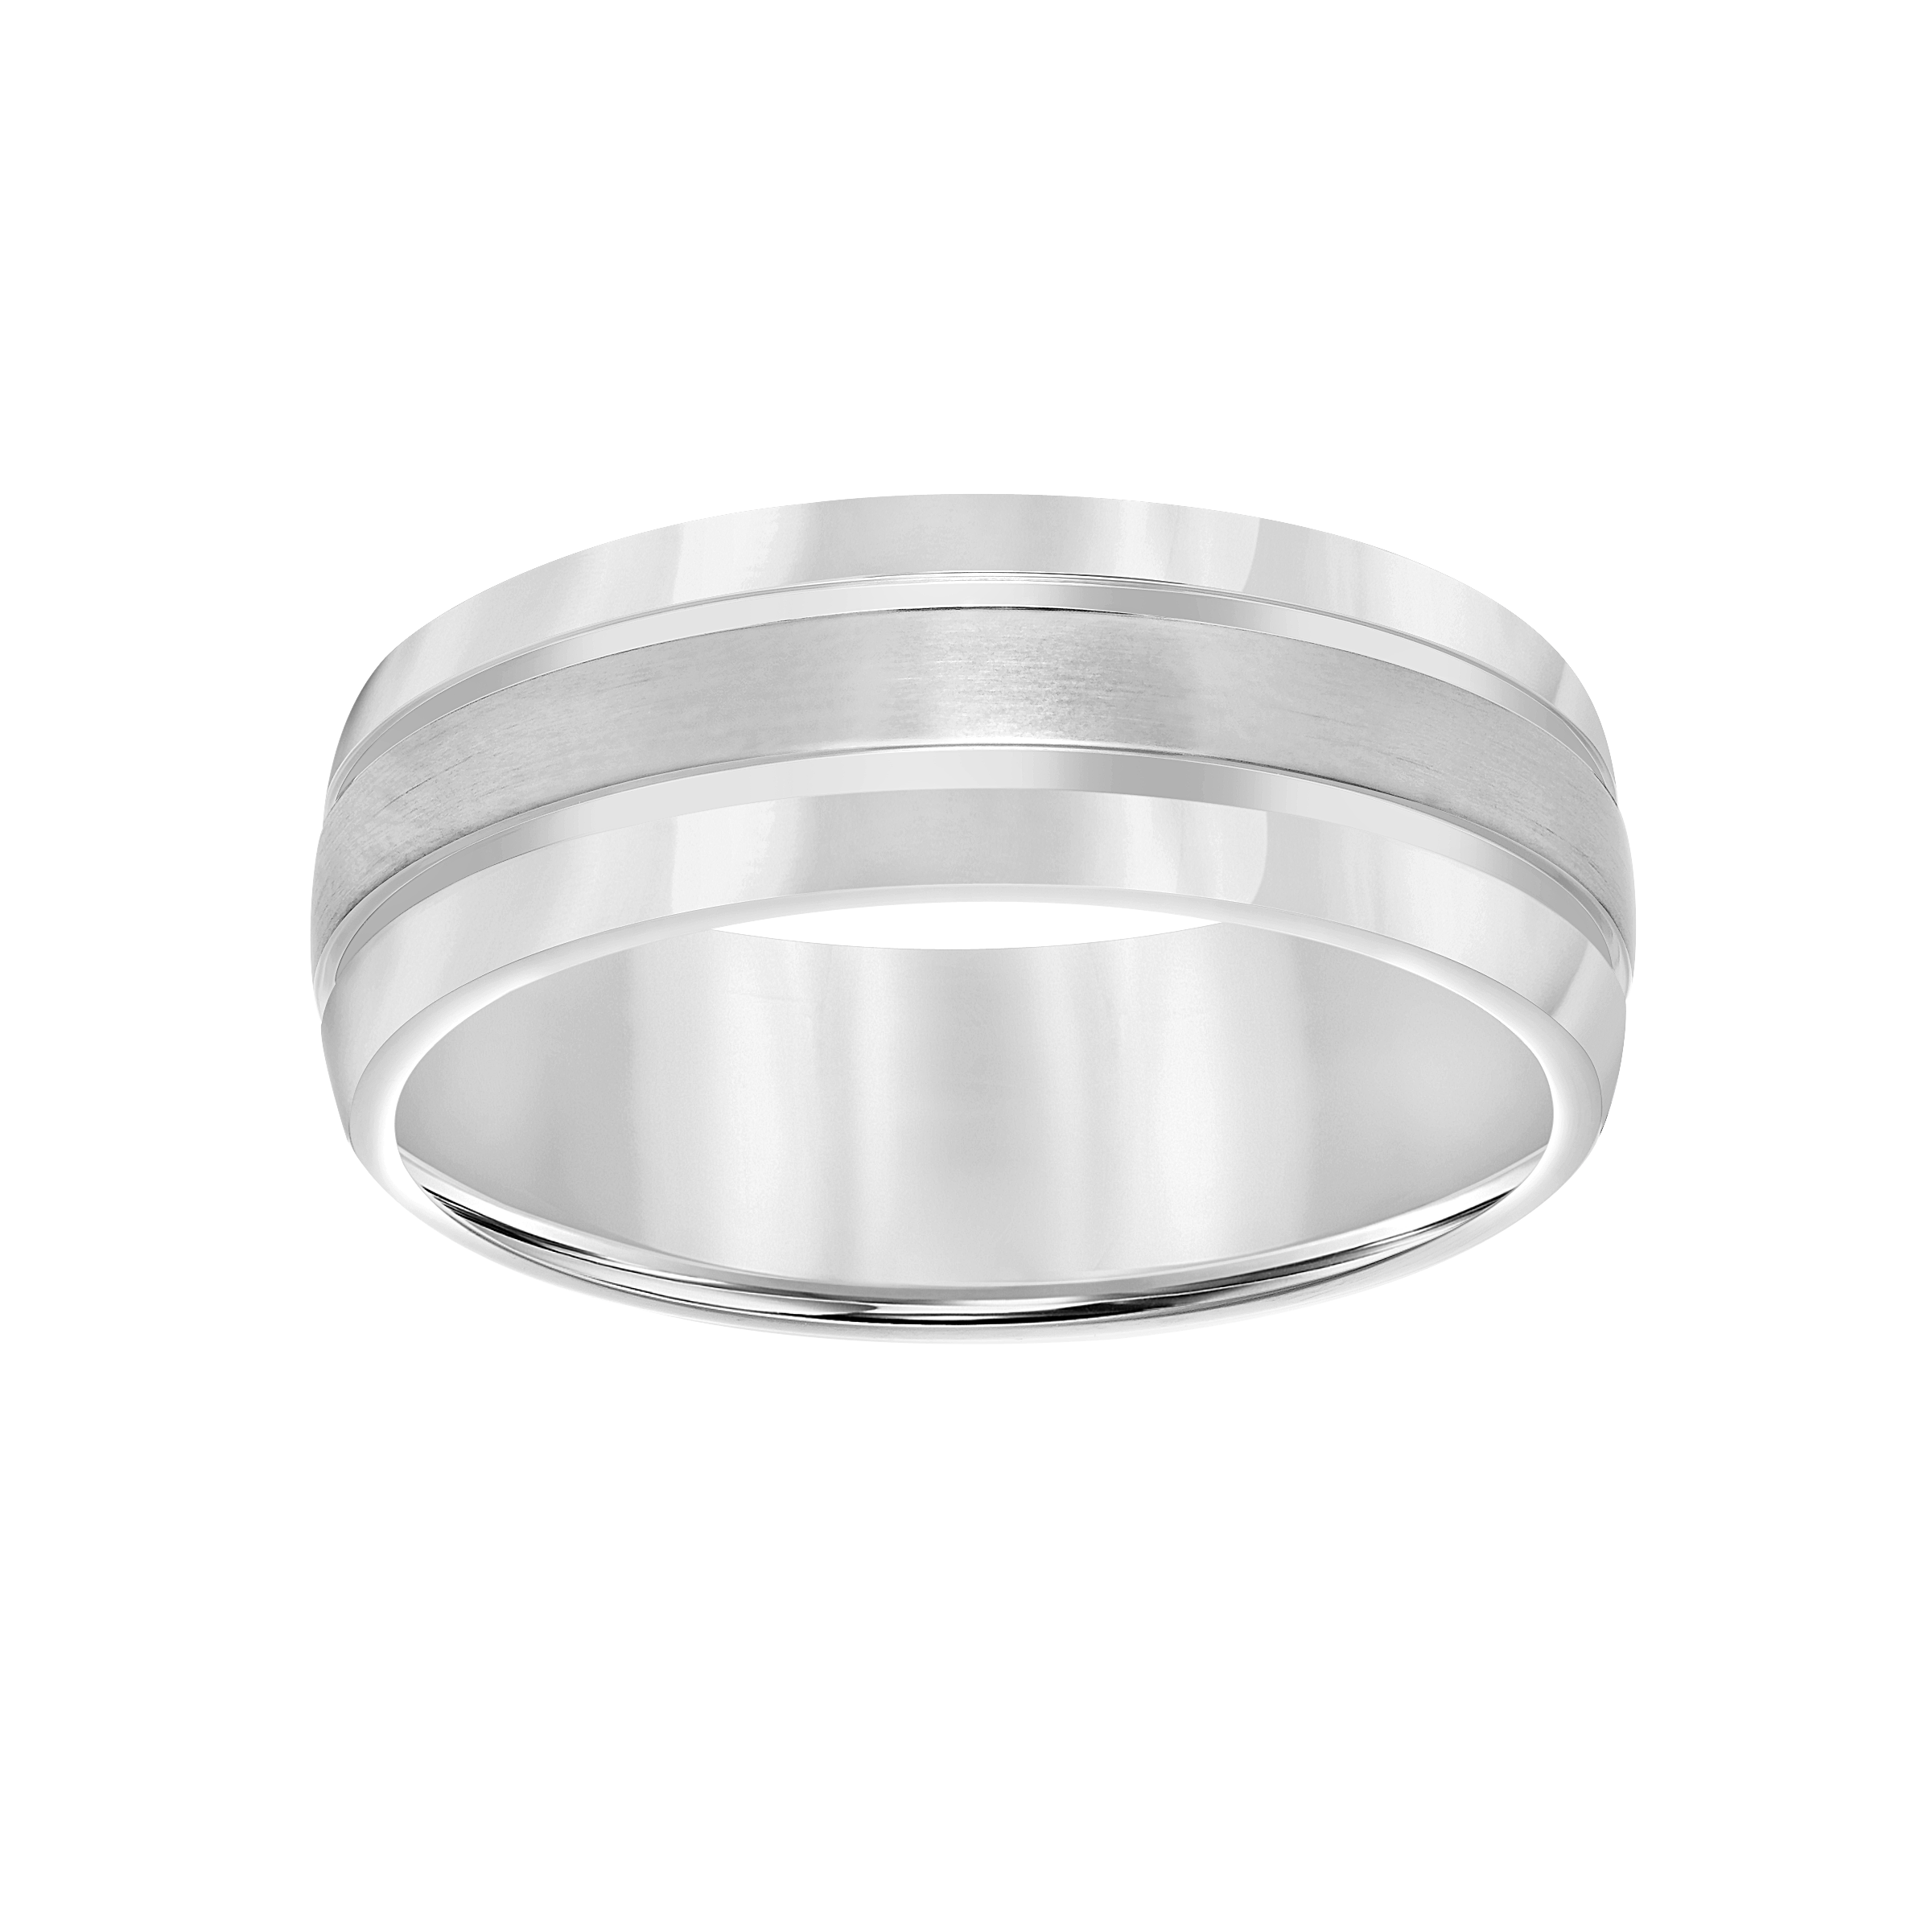 Men's Comfort Fit Titanium Wedding Band, 8mm